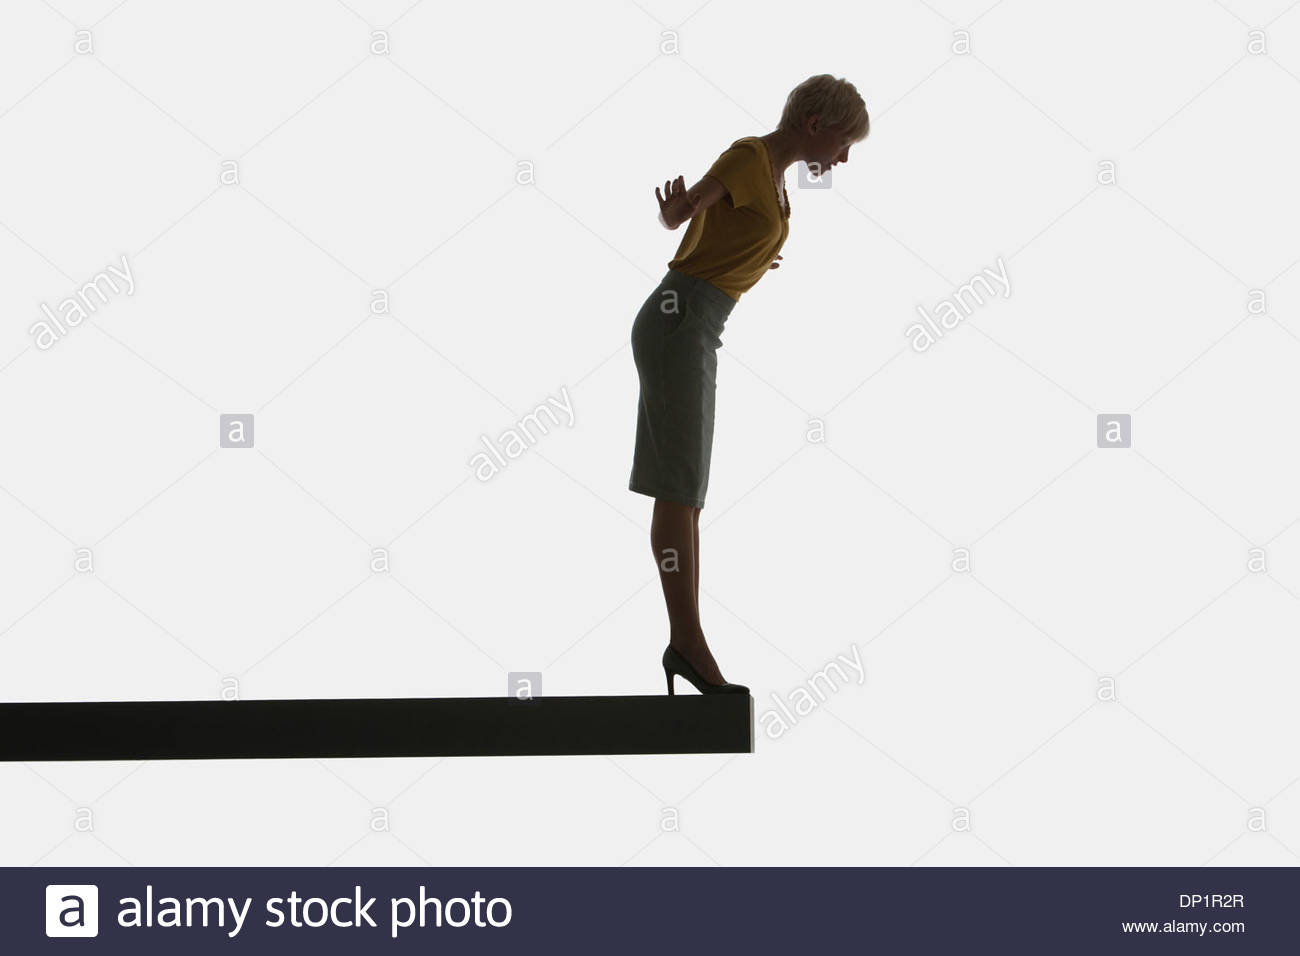 Woman standing on a plank - Stock Image